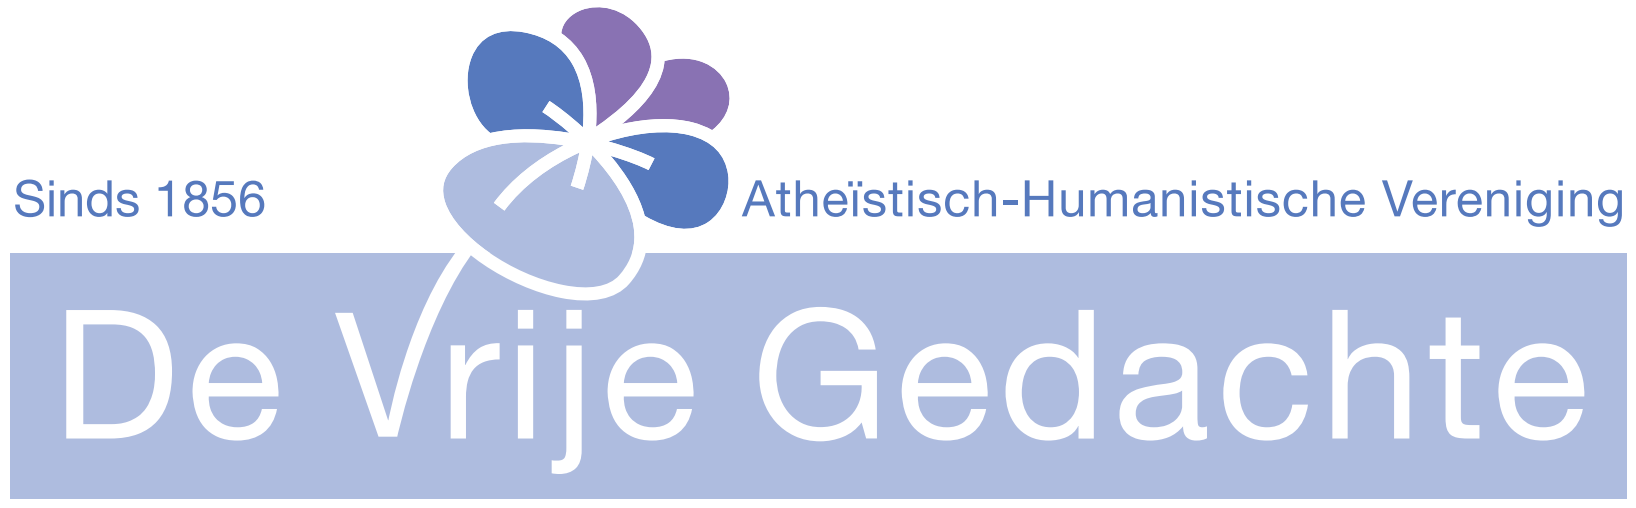 Gedachte Png - File:De Vrije Gedachte logo.png - Wikimedia Commons